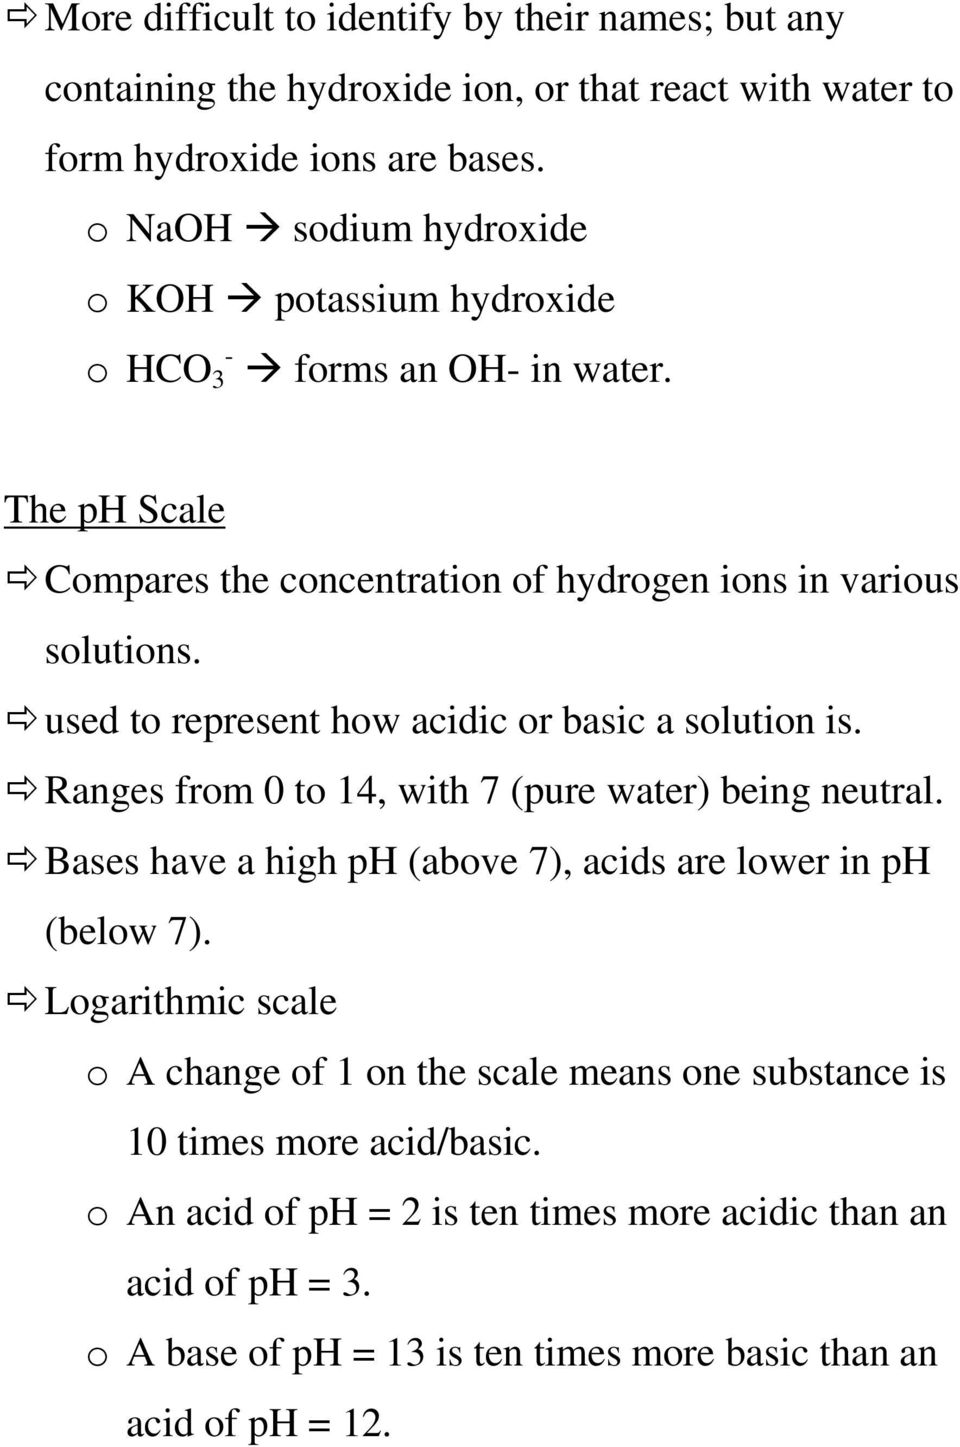 used to represent how acidic or basic a solution is. Ranges from 0 to 14, with 7 (pure water) being neutral. Bases have a high ph (above 7), acids are lower in ph (below 7).